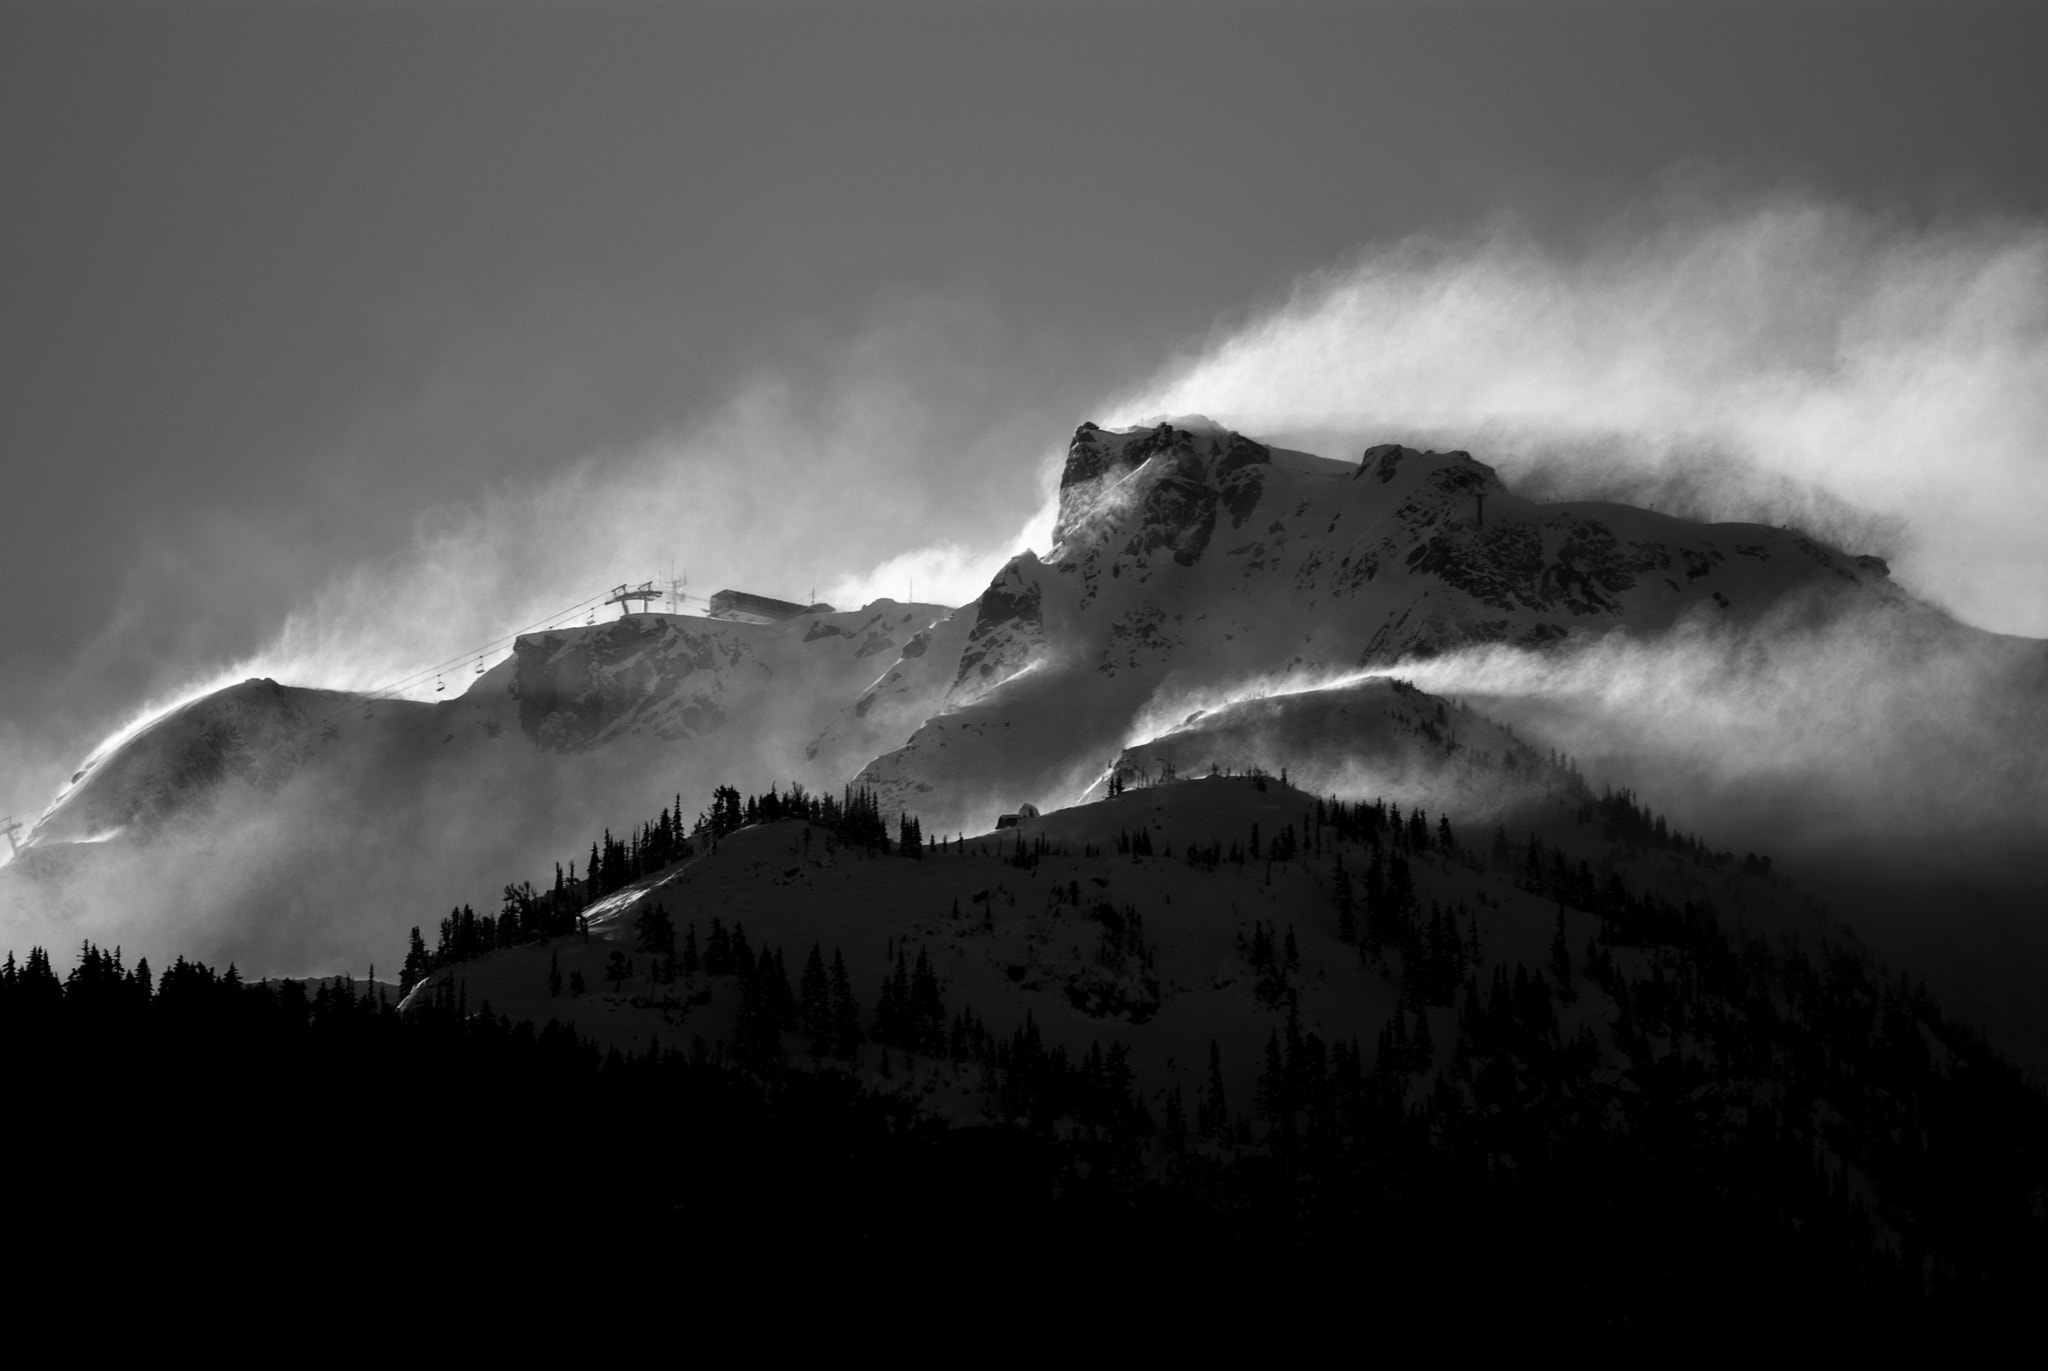 Photograph Wind howling off the peak of Whistler Mountain by Nicolas Teichrob on 500px